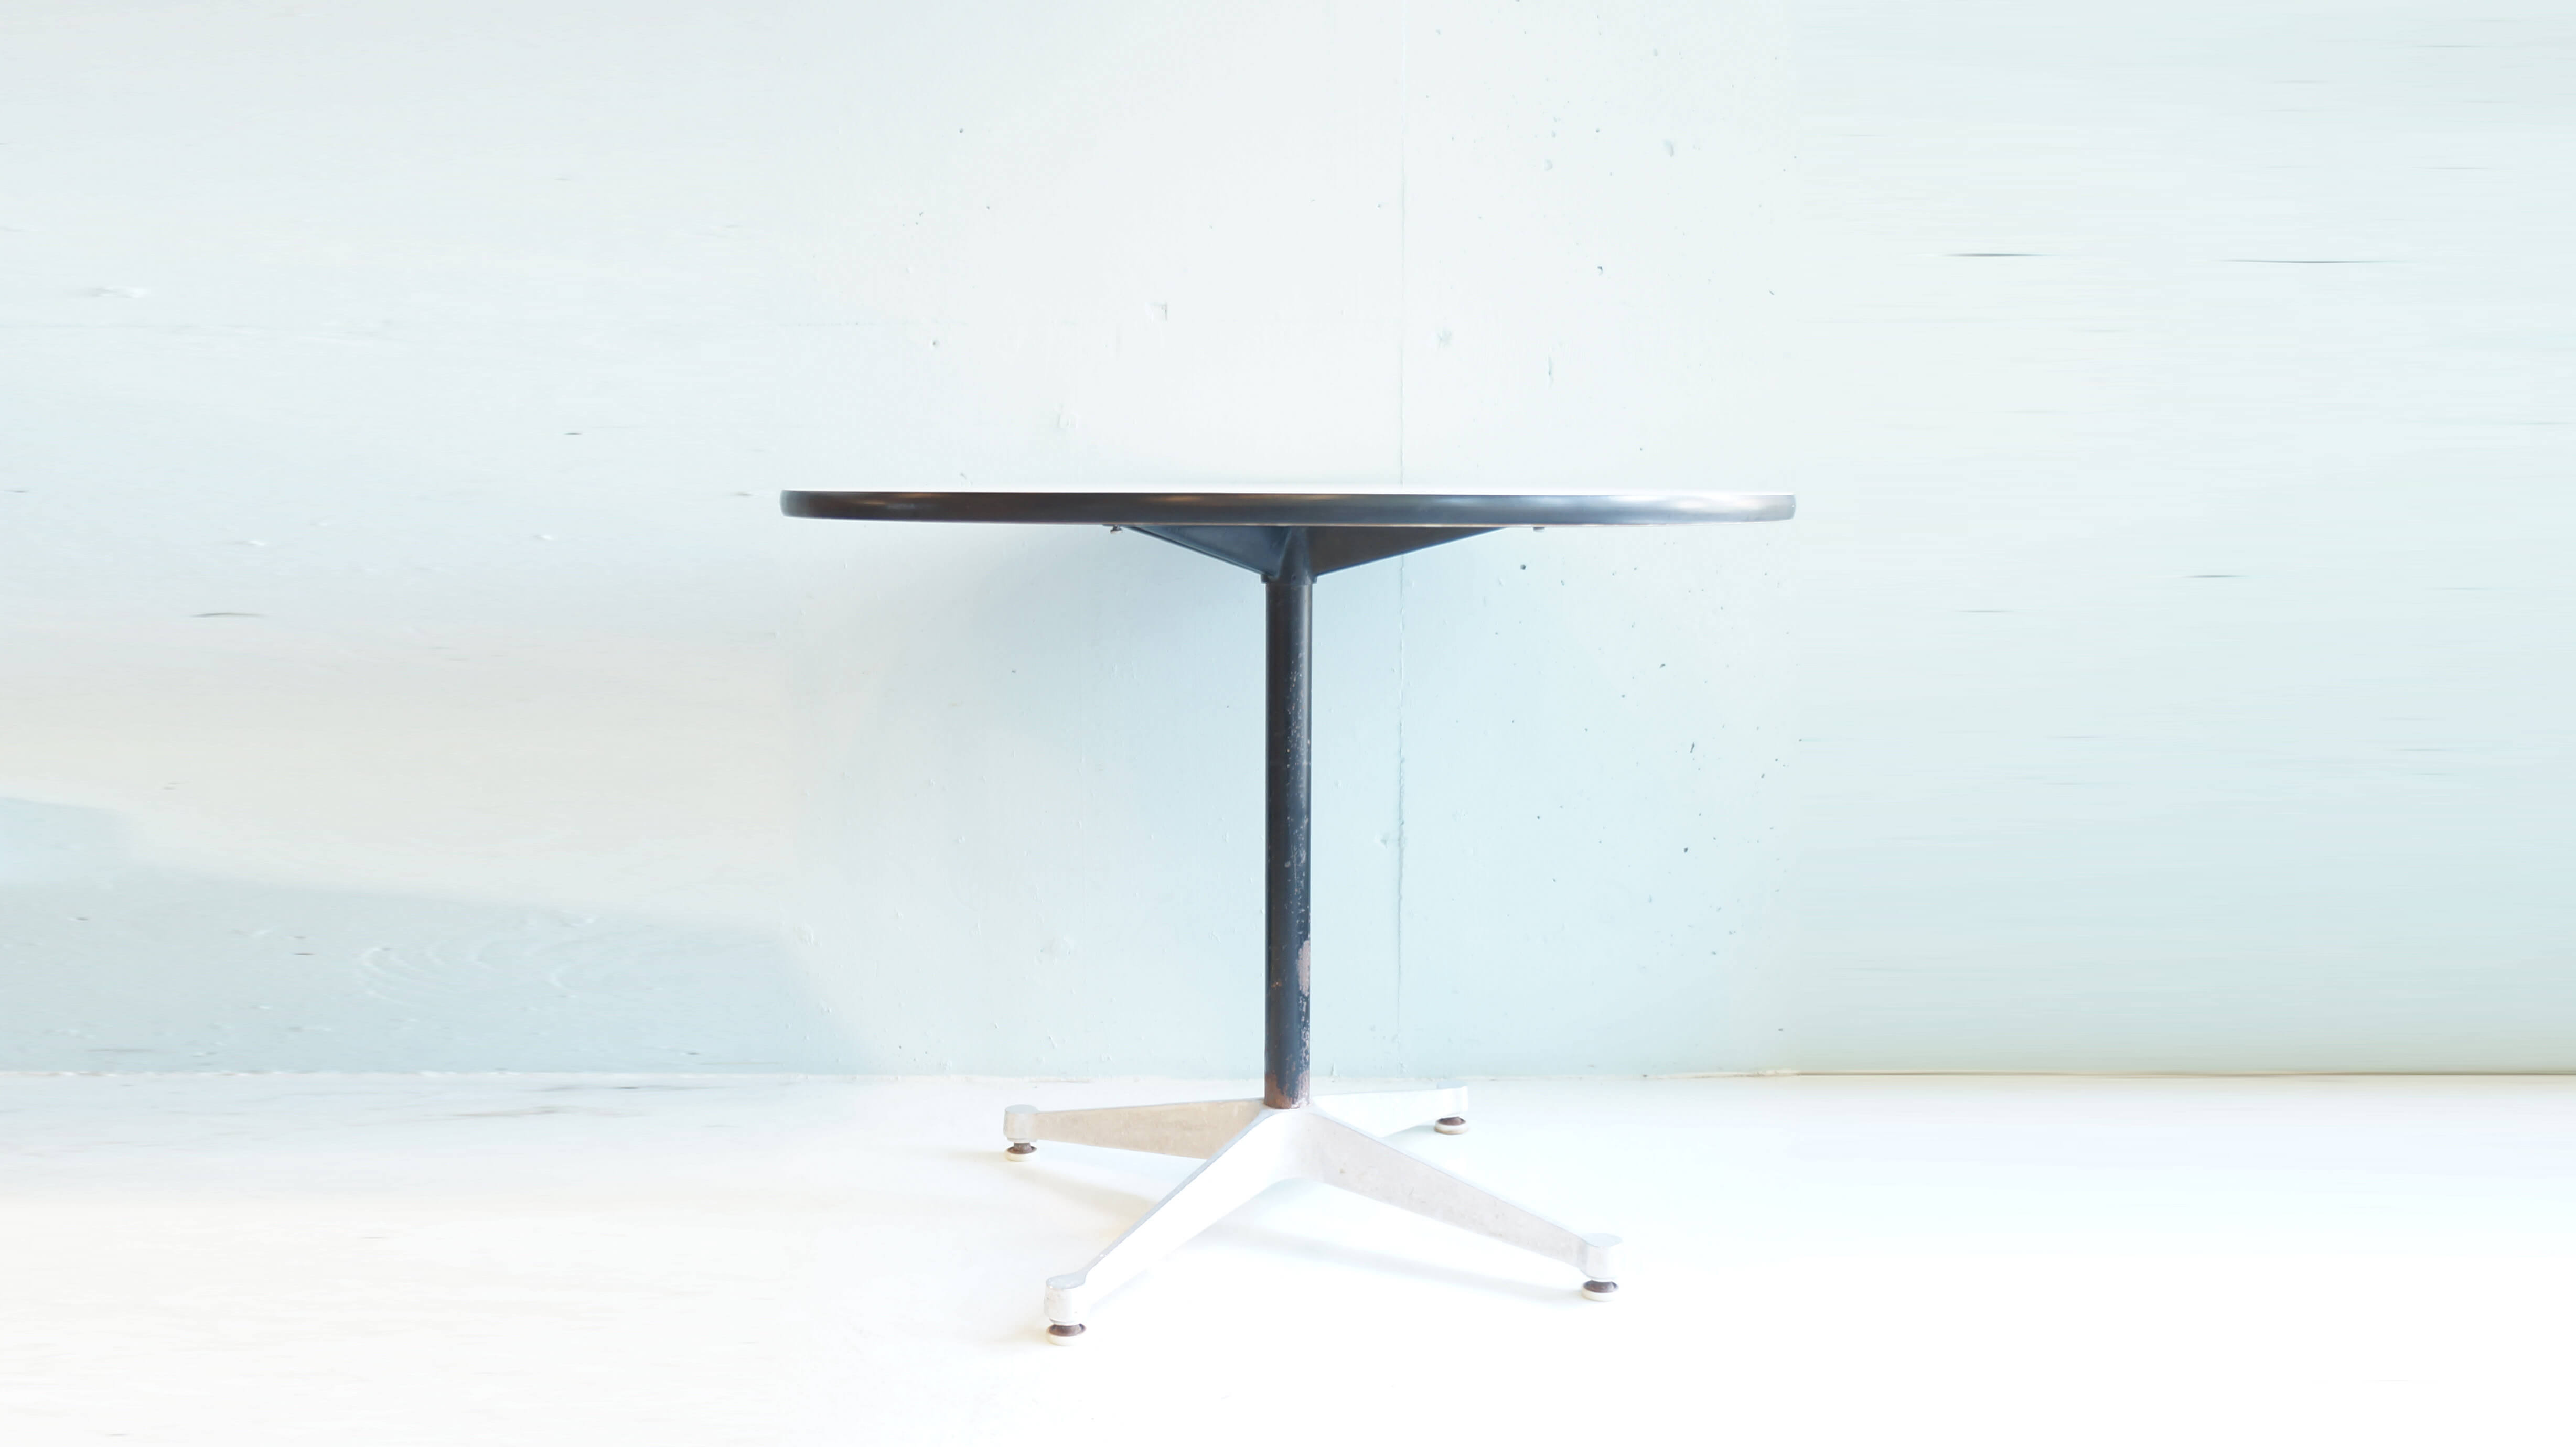 Herman Miller Eames Round Table with Contract base / ハーマンミラー イームズテーブル コントラクトベース